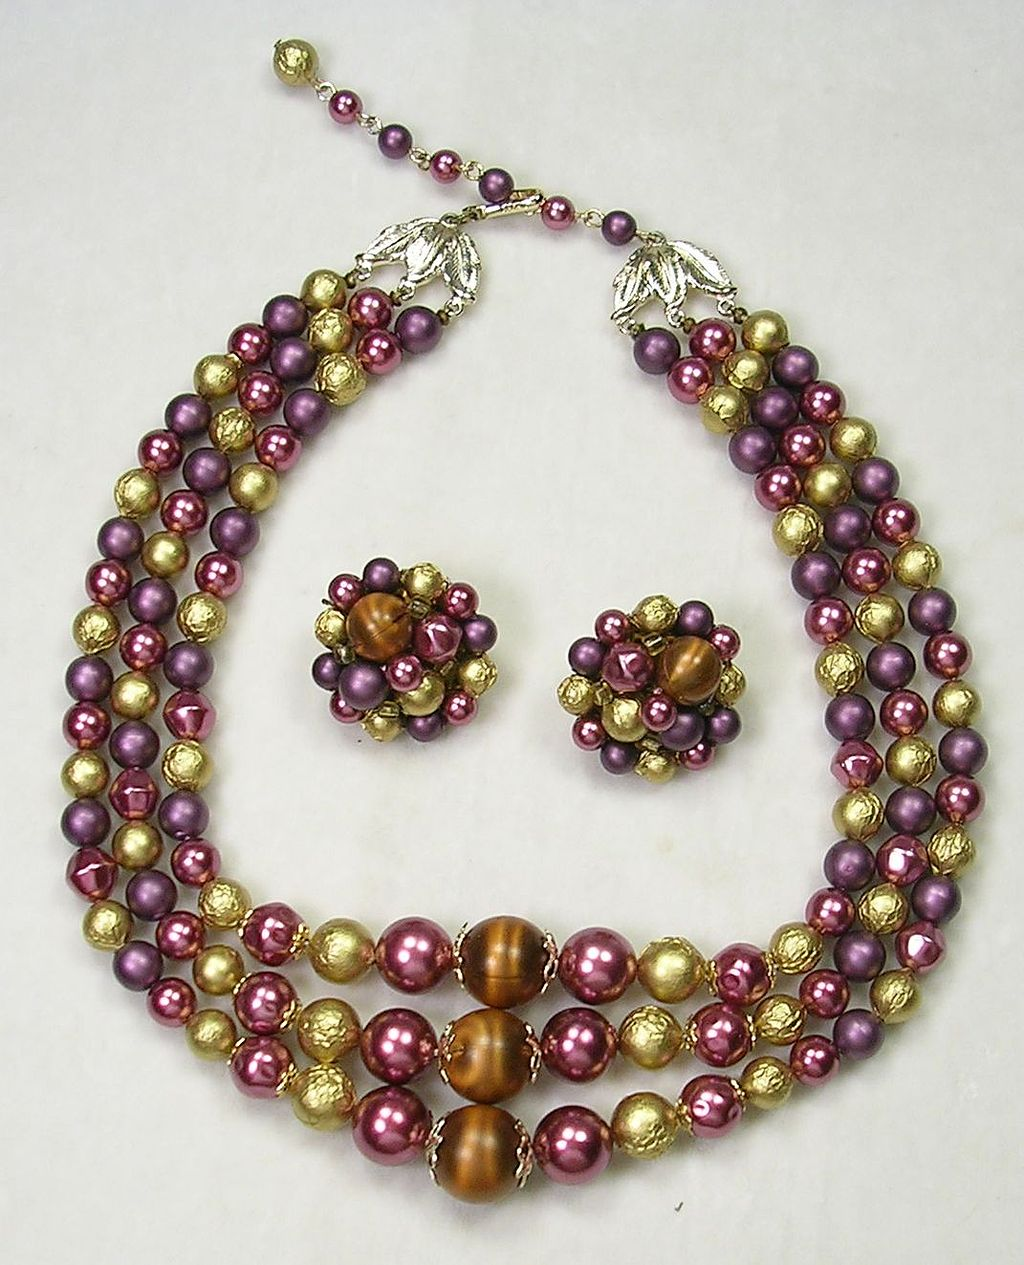 Signed Japan Triple Strand Moon Glow Lucite Beaded Necklace and Earrings with colors of Copper, Gold, Plum – c. 1940s – 1950s